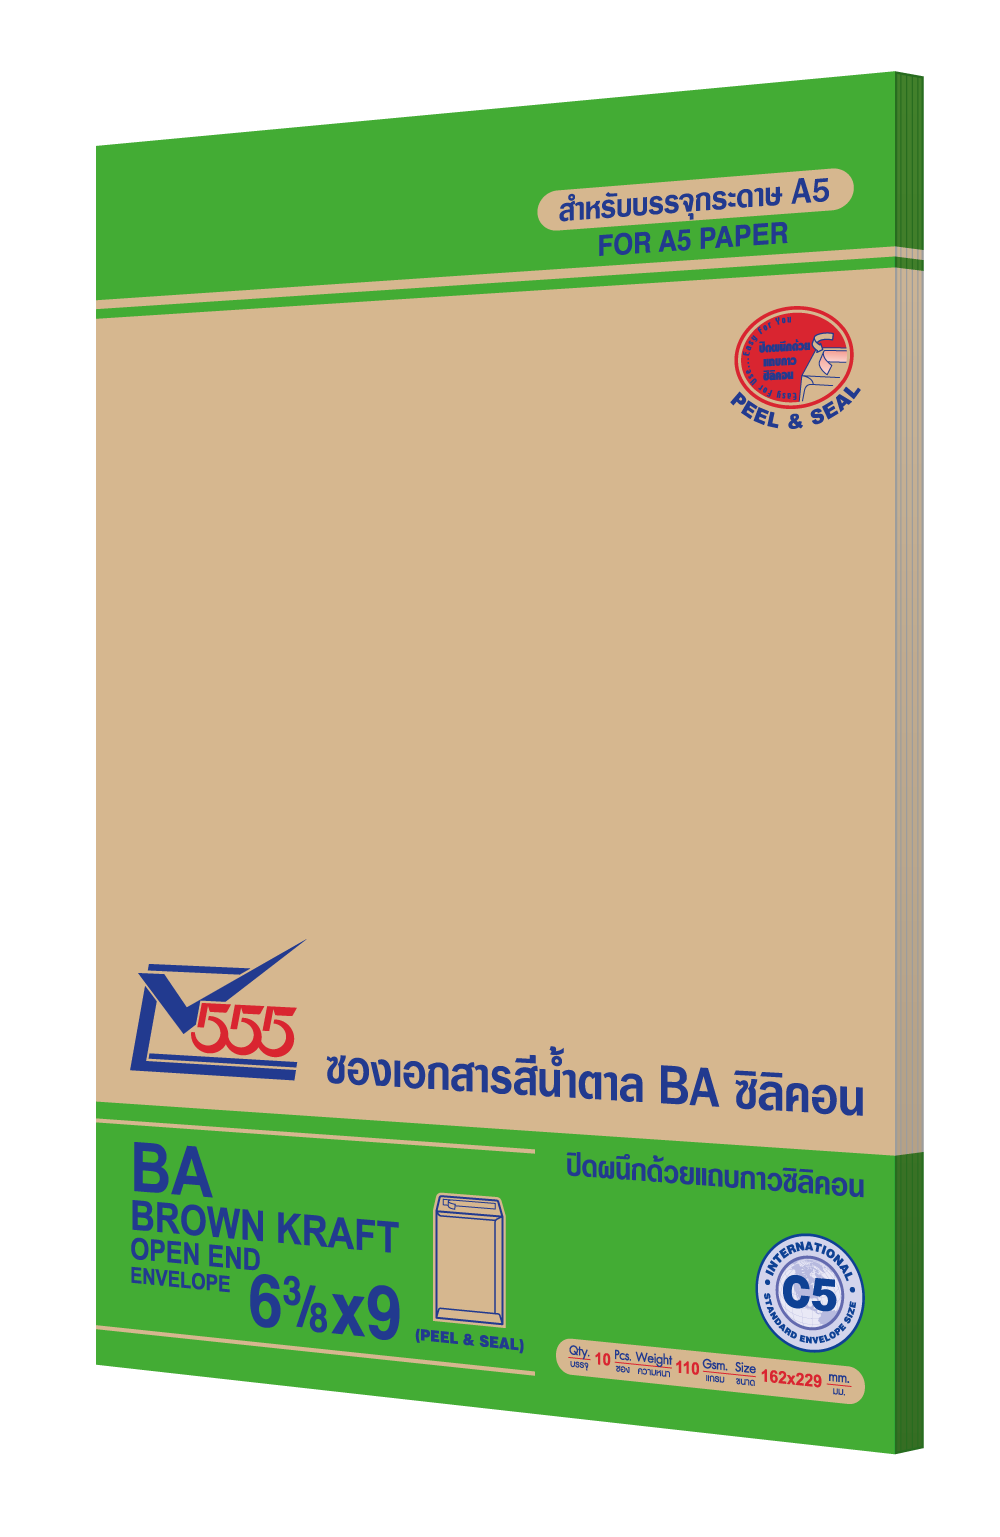 BA Brown Kraft Open End No. 6 3/8 x 9 Peel & Seal (Pack 10)